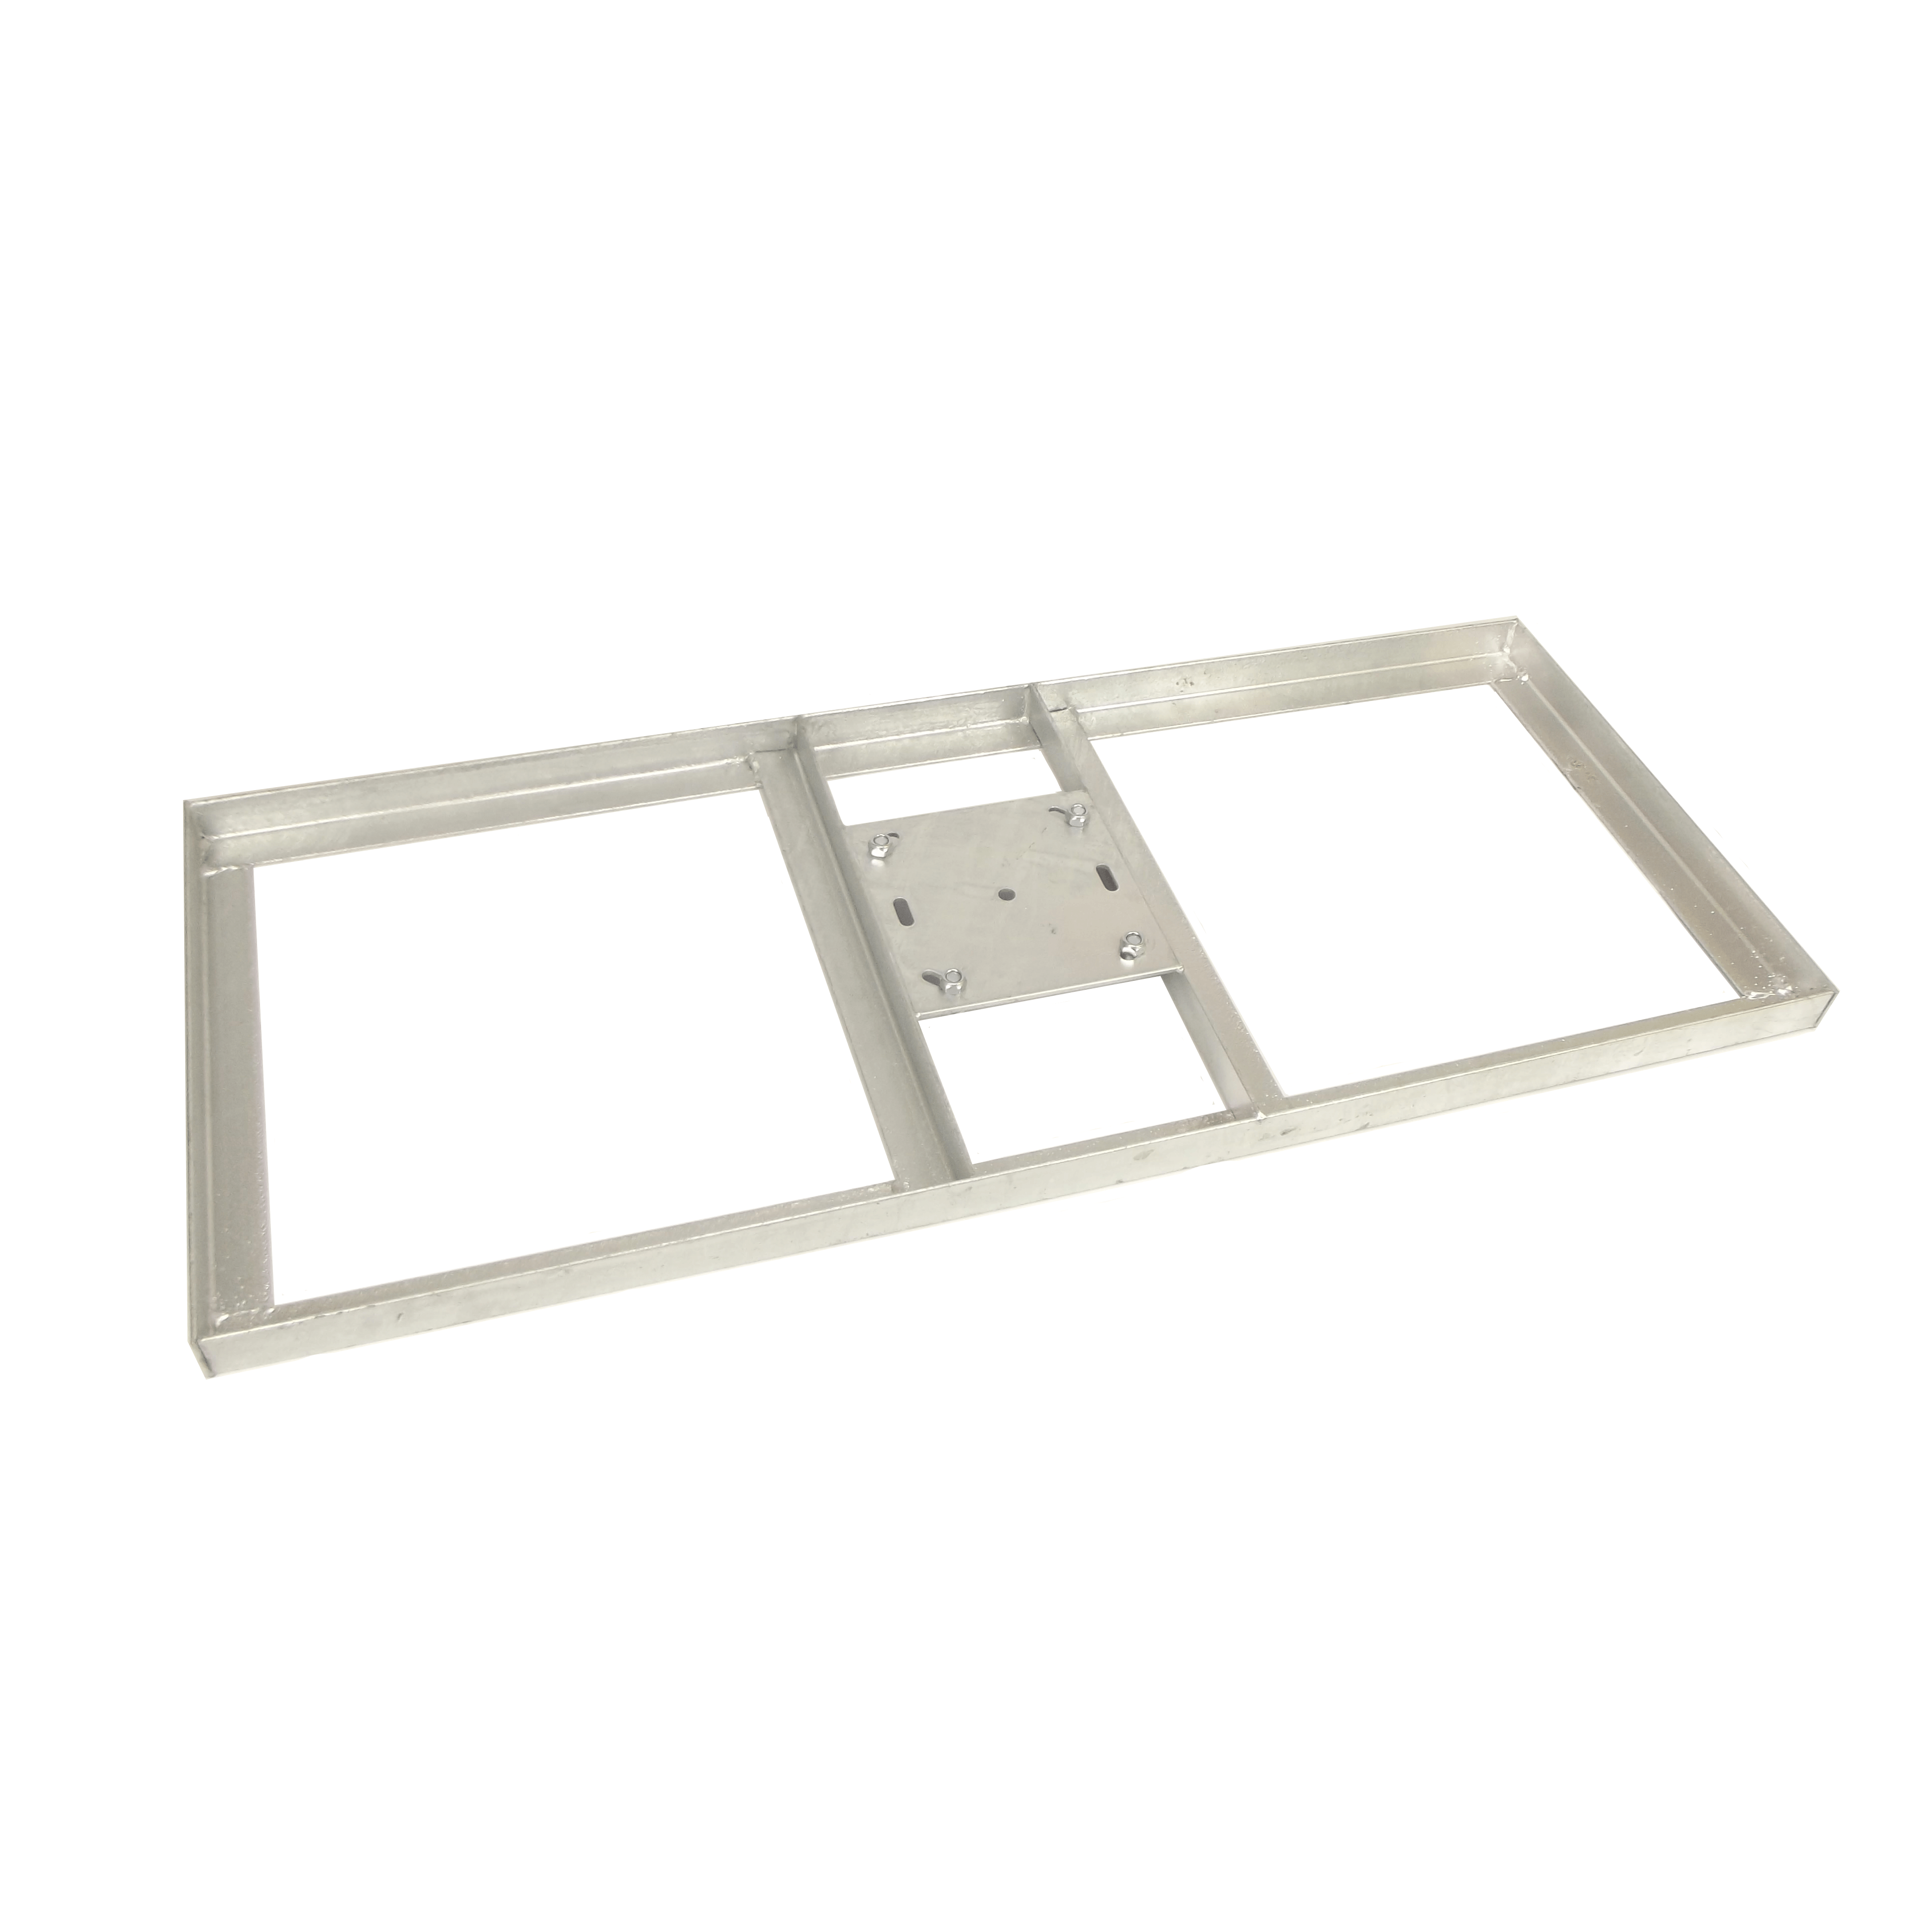 Non-Penetrating Roof & Patio Mounts - Antiference